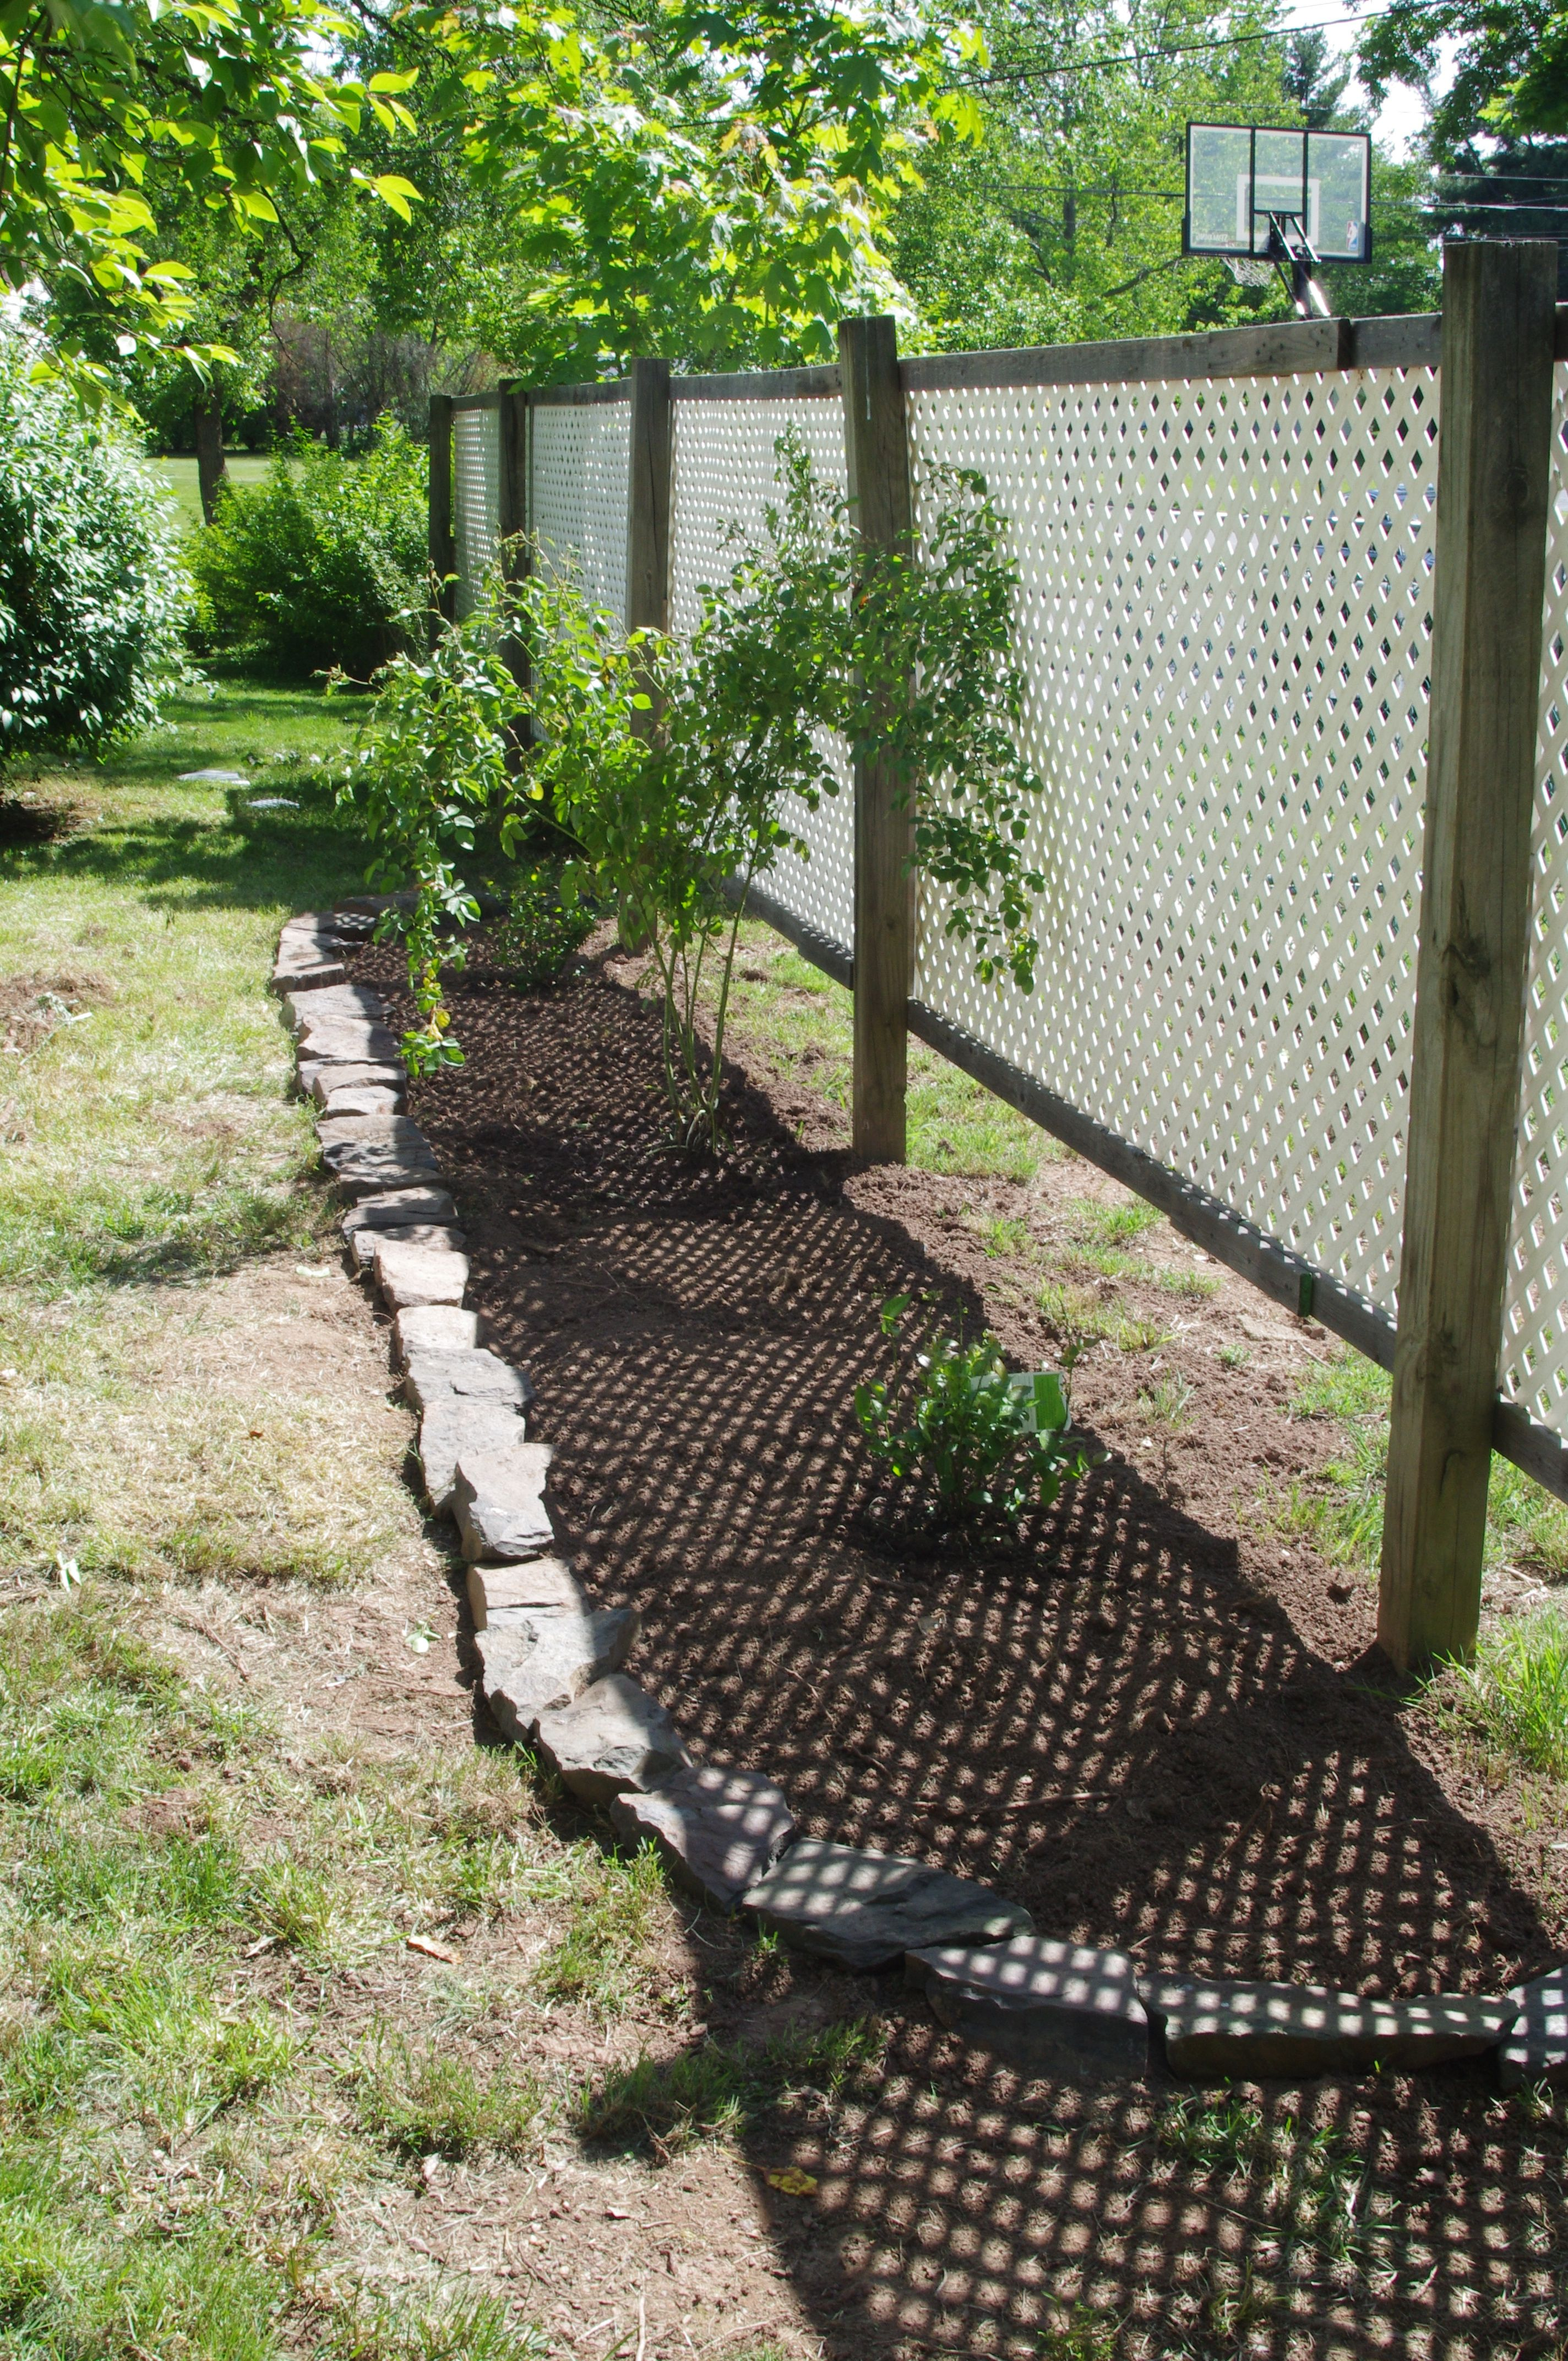 Vinyl Lattice Supported By Posts To Grow Climbing Plants On